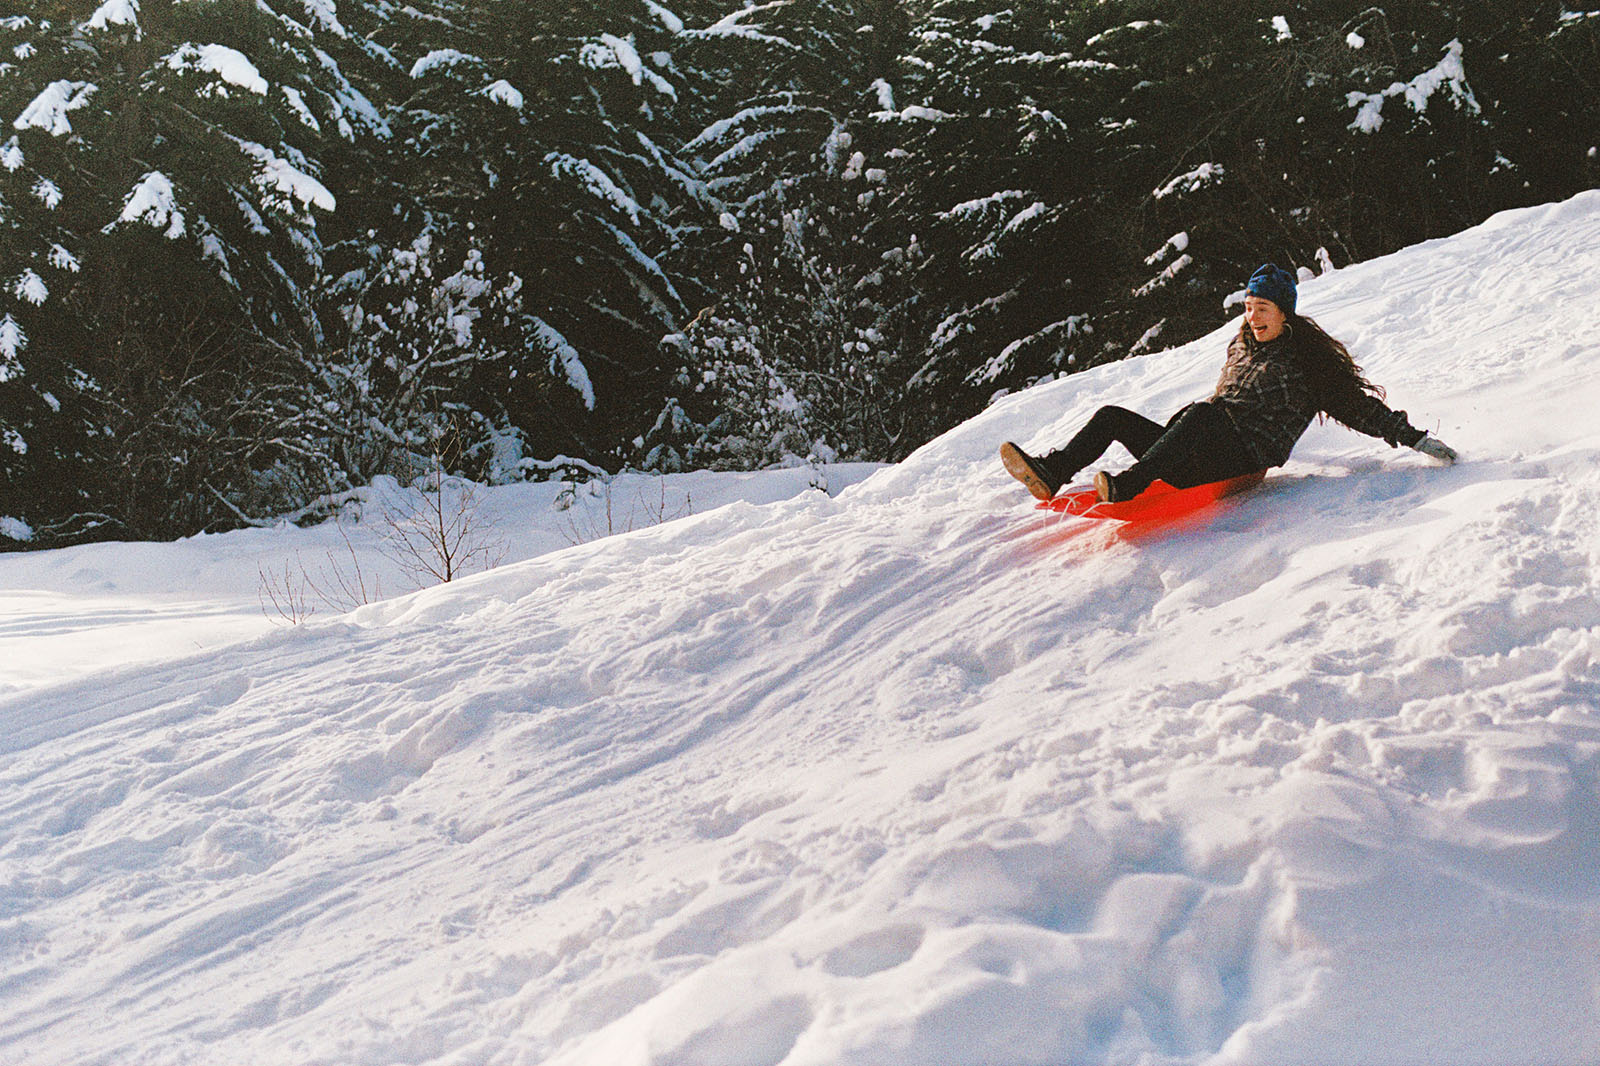 Richelle sledding down the snow in Trout Lake, WA | Contax Aria